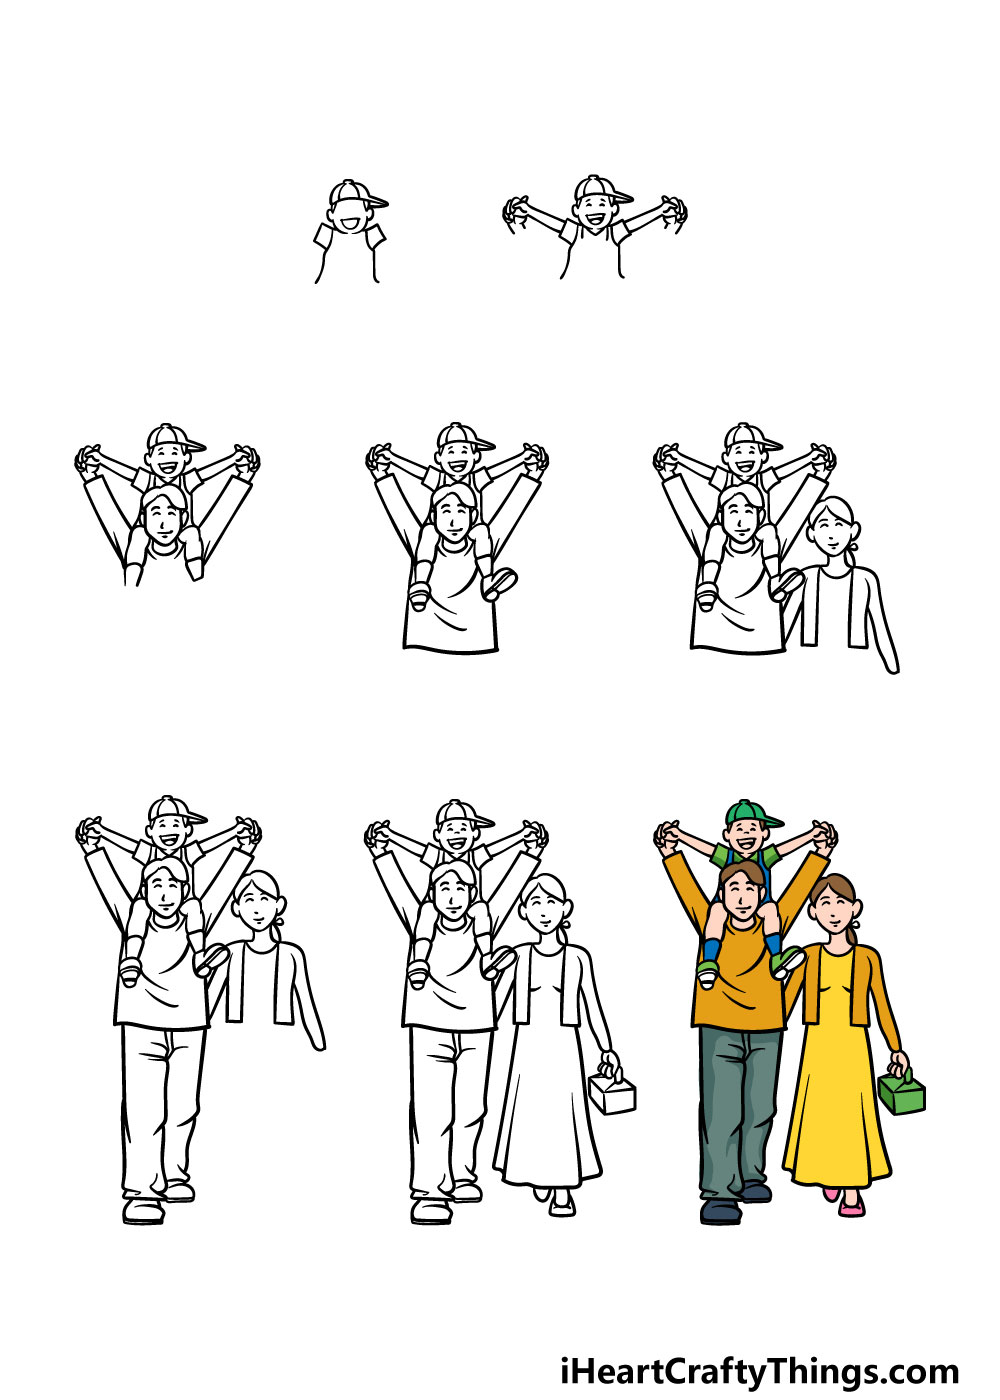 how to draw a family in 8 steps